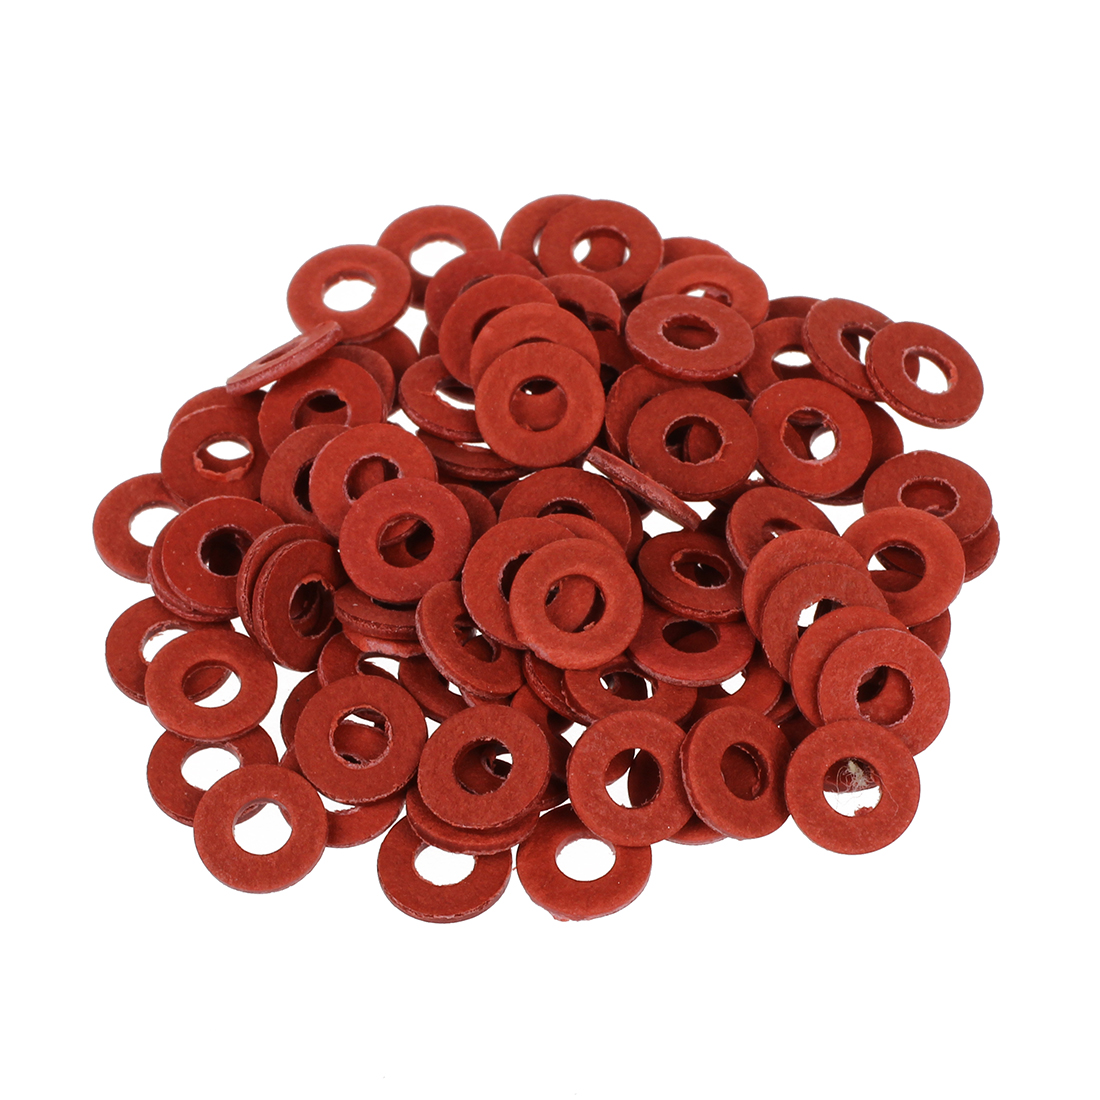 JFBL Hot sale New Hot Sale 100 Pcs Practical Red Motherboard Screw Insulating Fiber Washers цена